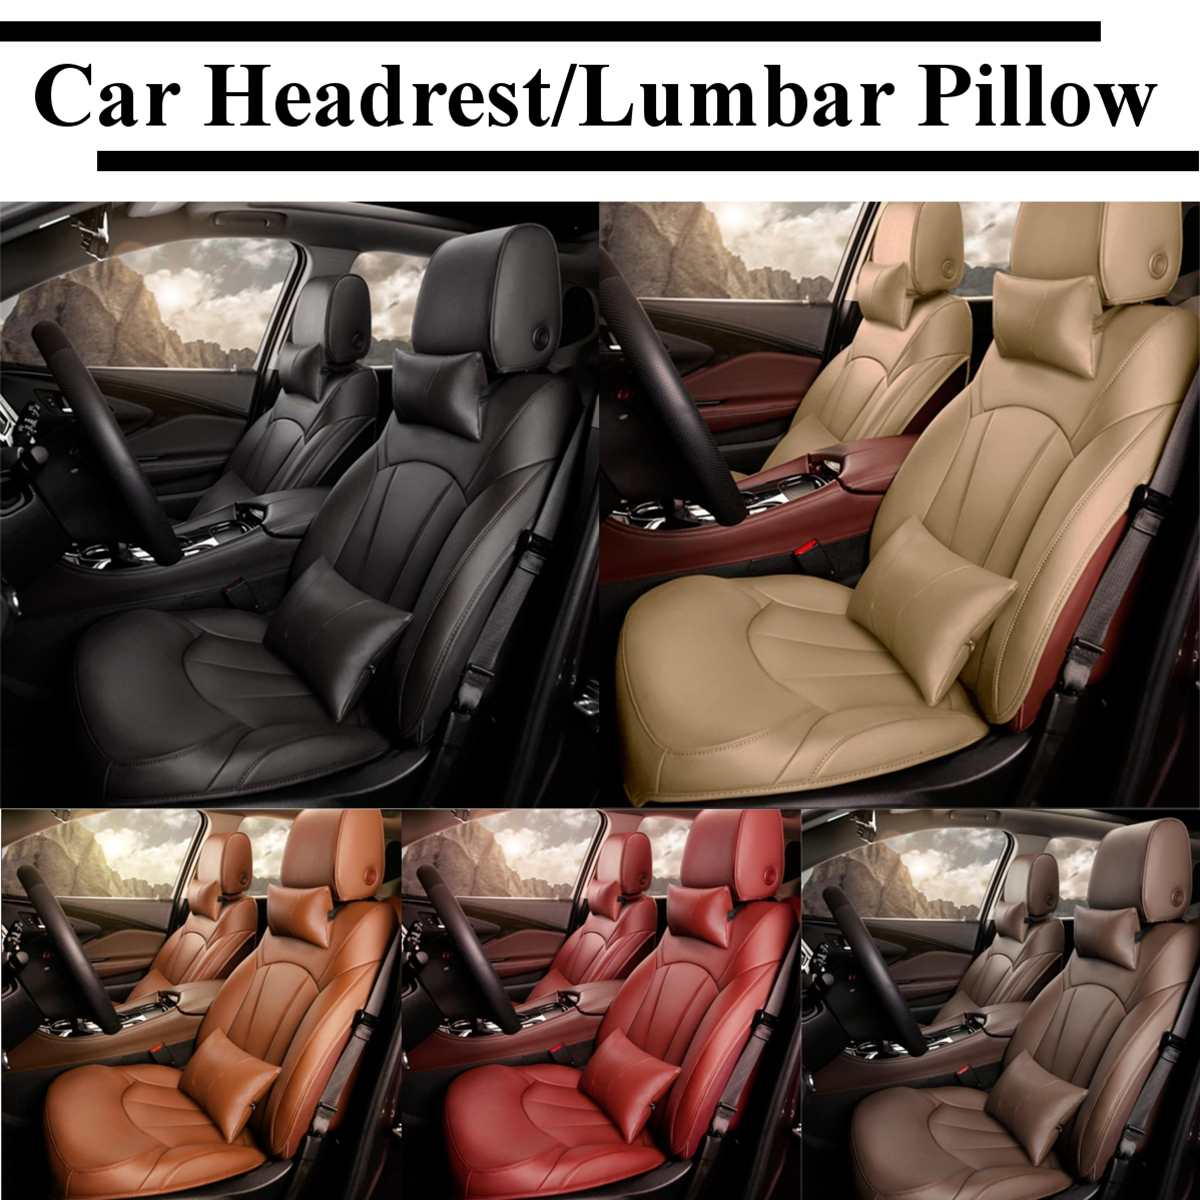 Soft Leather Car Neck Back Seat Pillow Lumbar Support Massager Waist Cushion Pillow For Chairs Seat Relieve Pain luxury Sponge